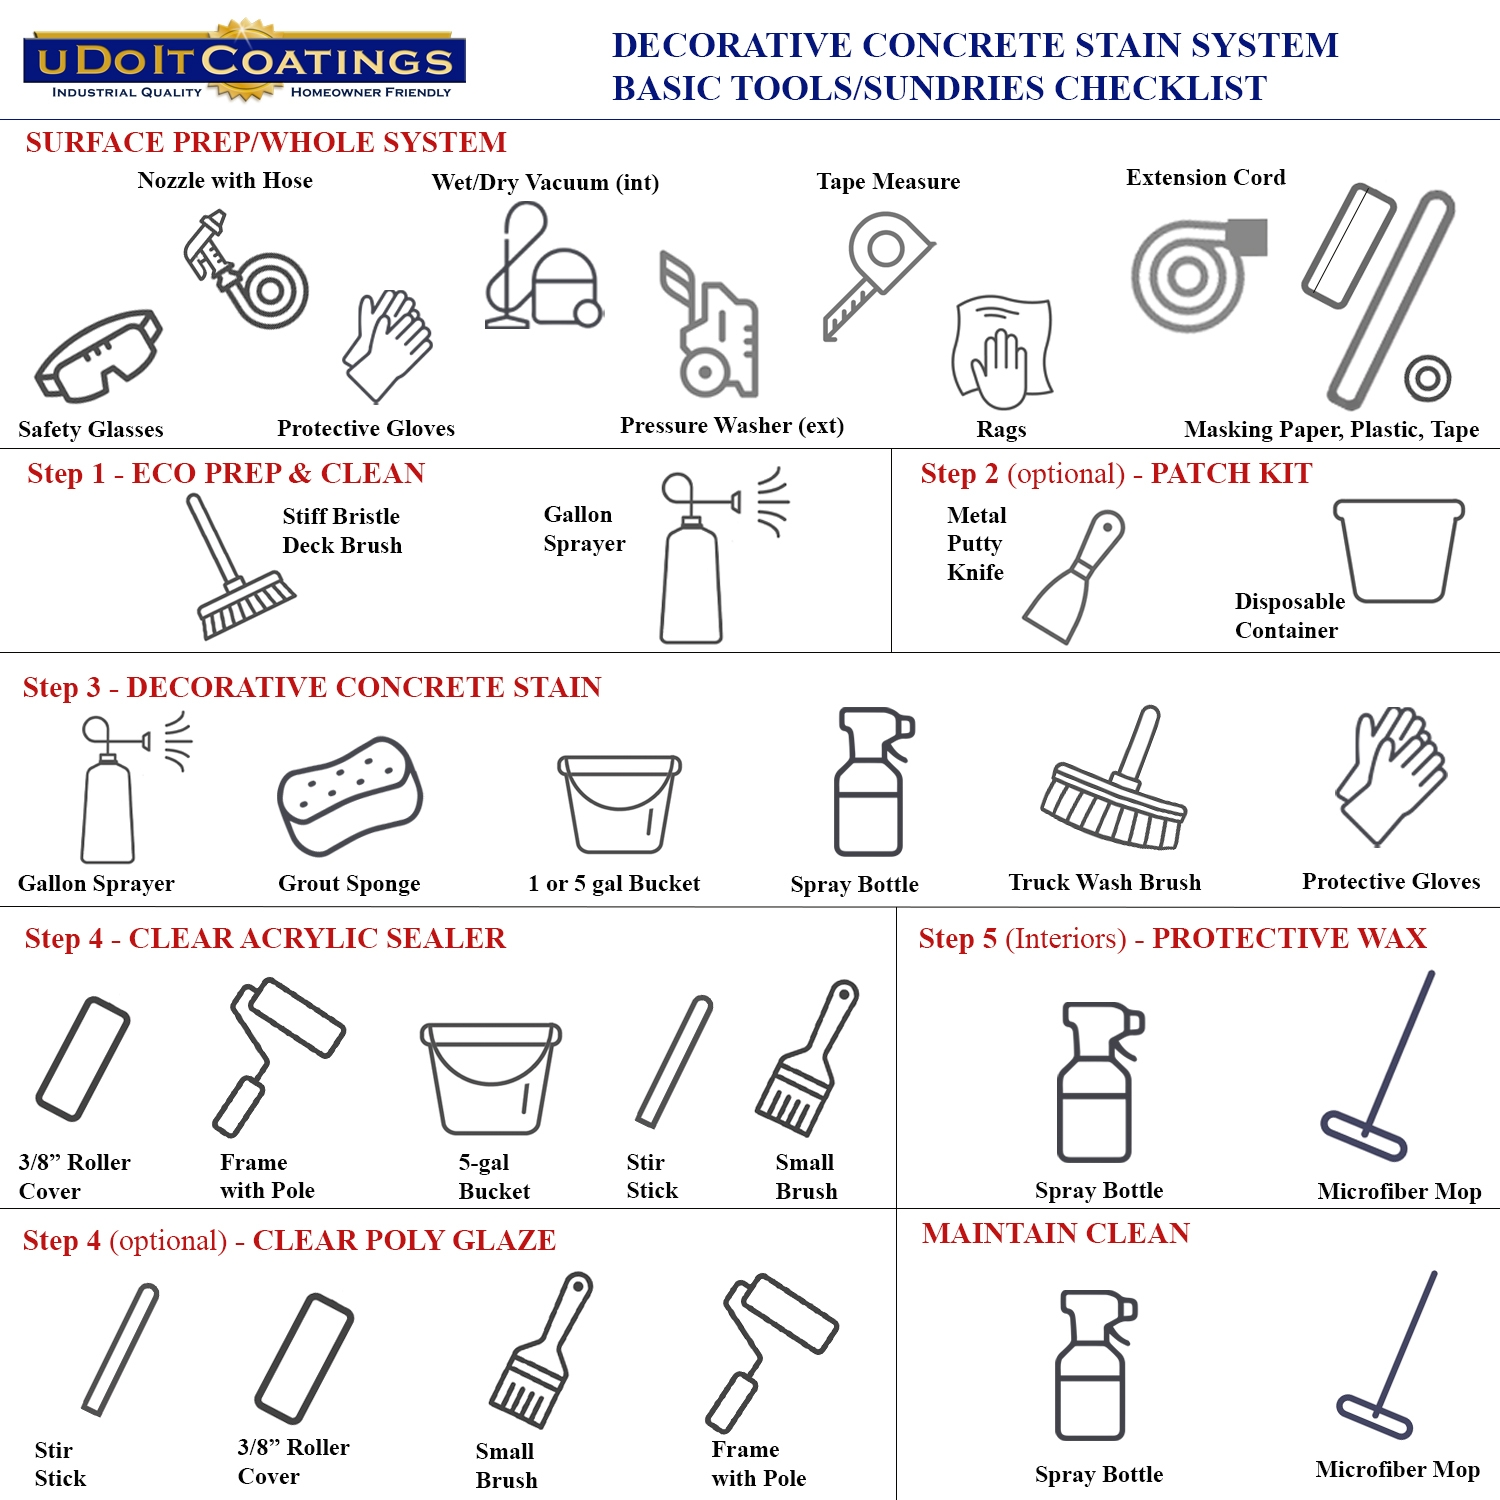 Decorative Concrete Stain System Basic Tools and Sundries Checklist